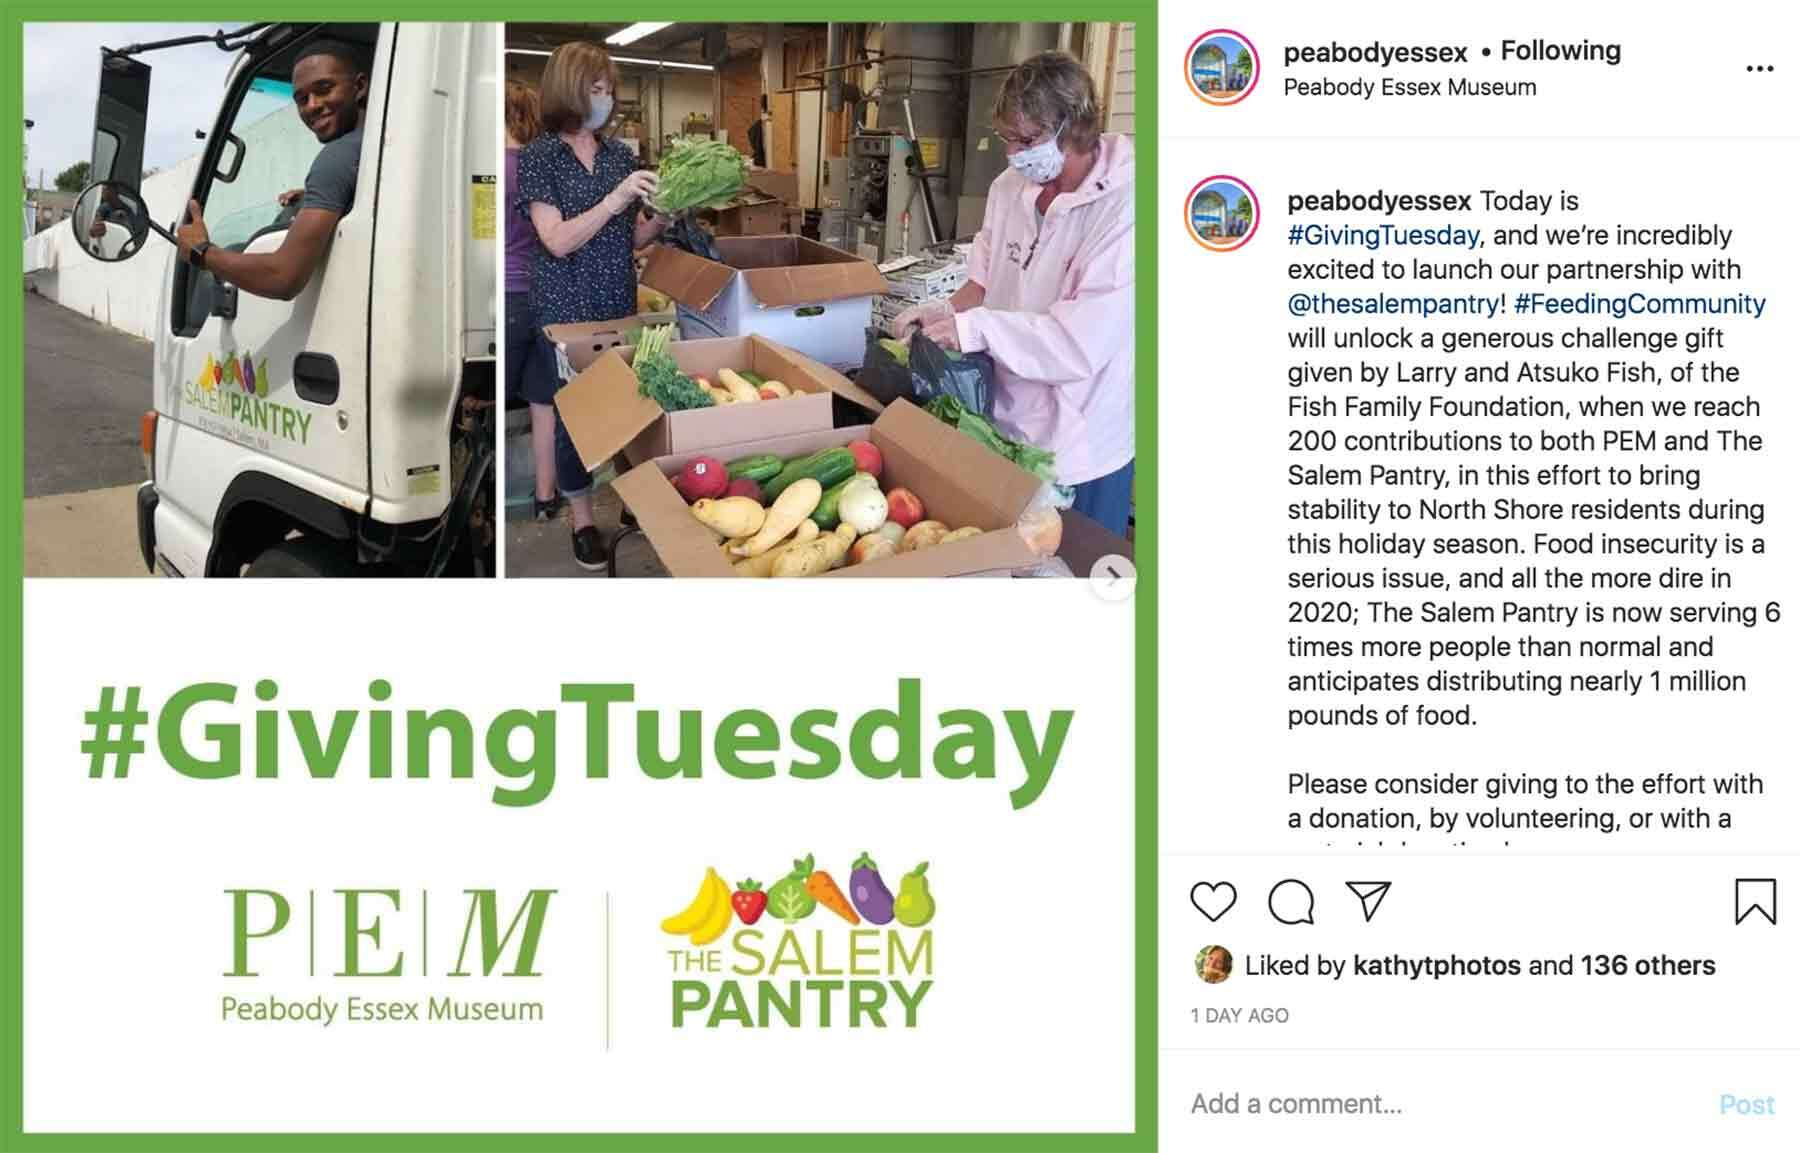 An instagram photo of people delivering food with #hashtag GivingTuesday